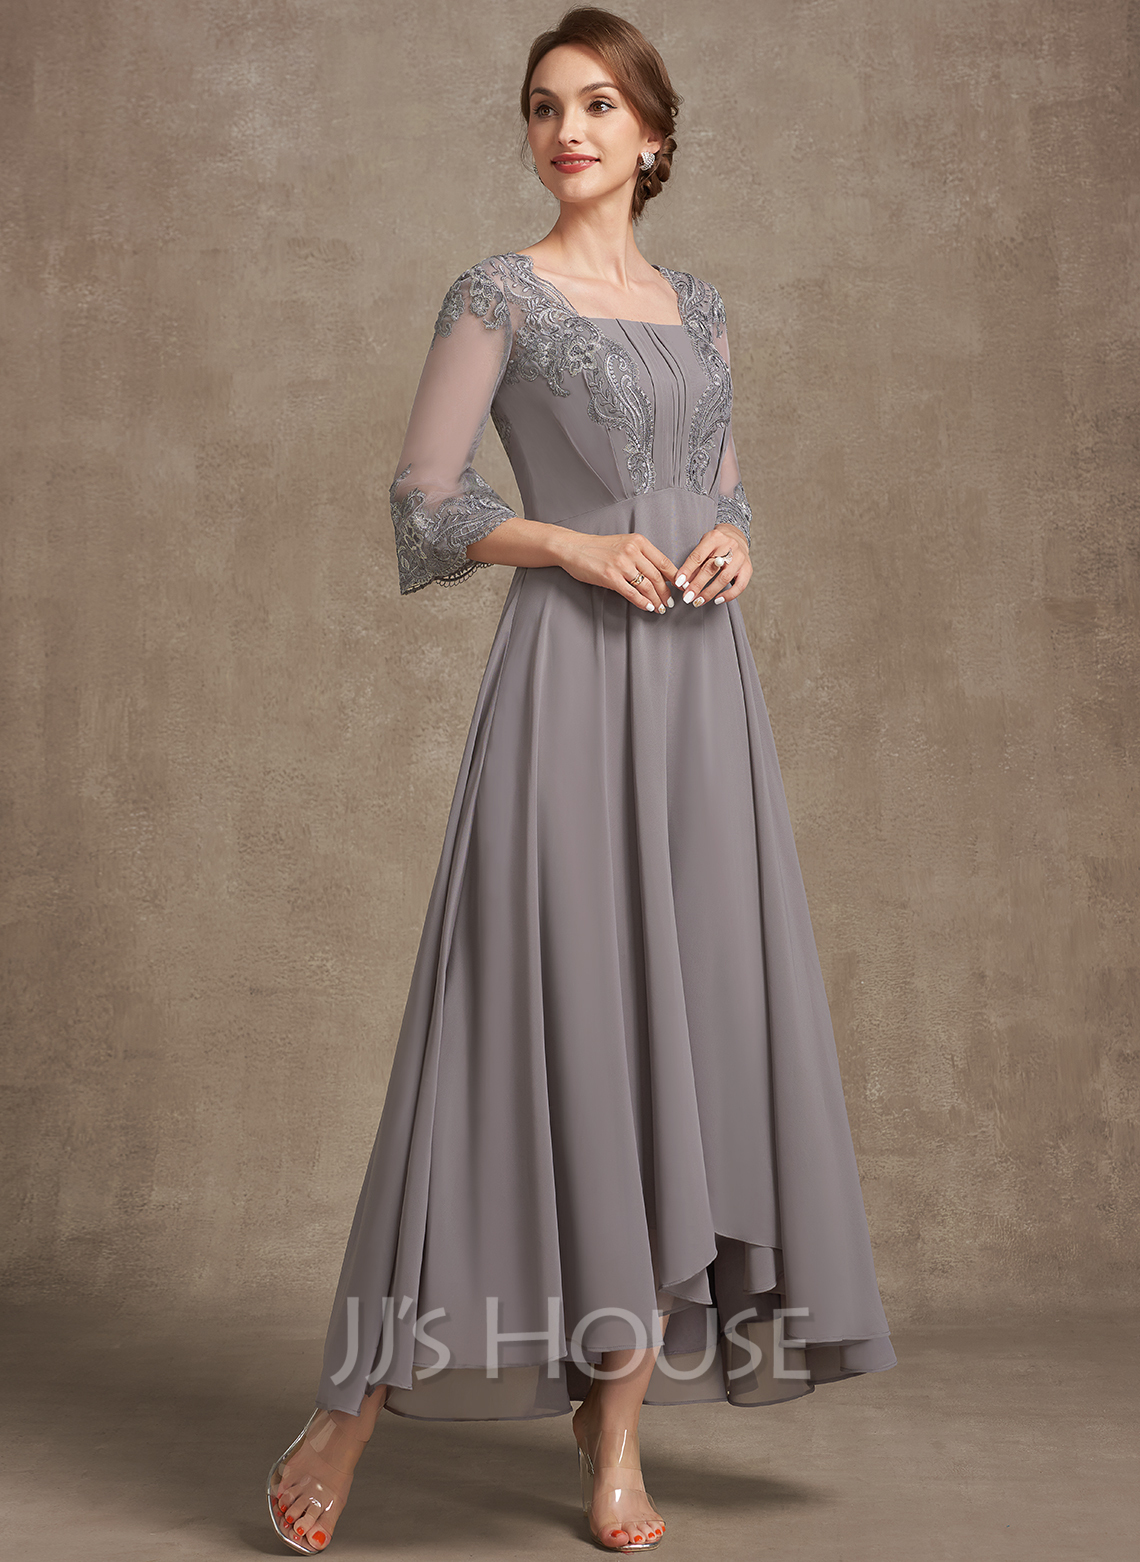 A-Line Square Neckline Asymmetrical Chiffon Lace Mother of the Bride Dress With Ruffle